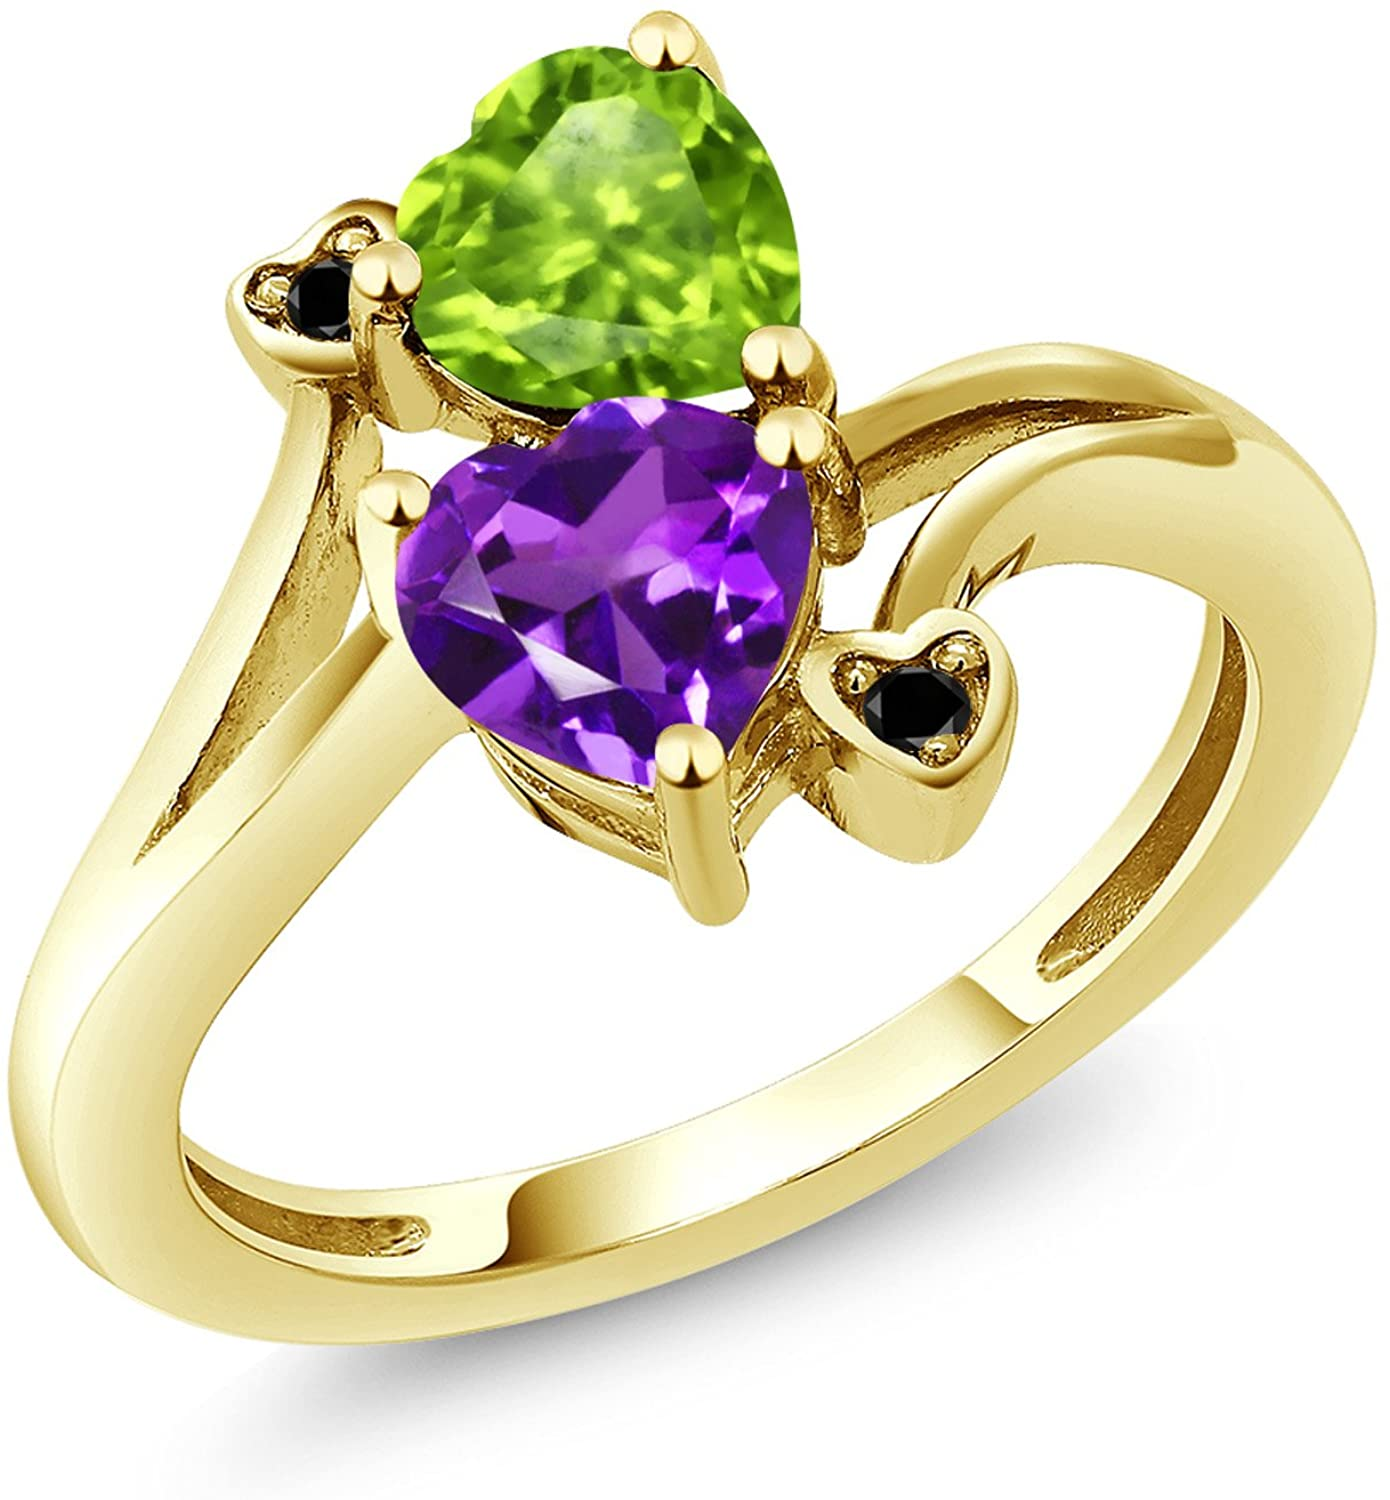 Gem Stone King 10K Yellow Gold Promise Customized and Personalized Build Your Own 2 Birthstone For Her Heart Engagement Ring